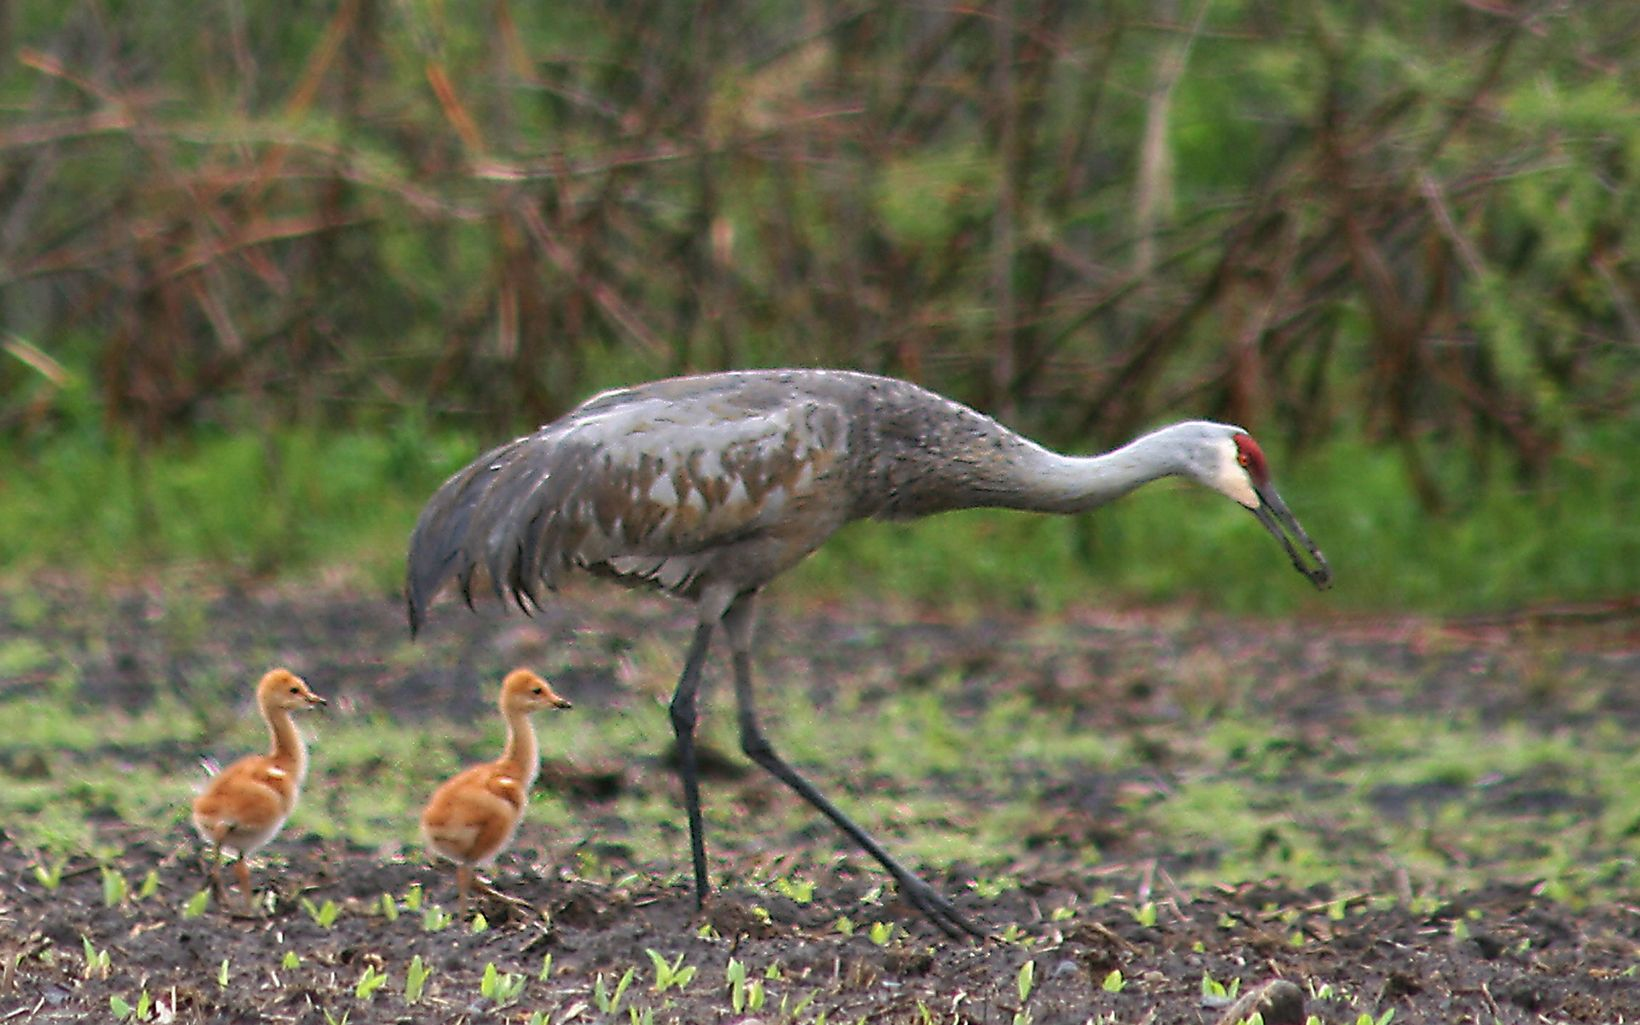 Sandhill cranes are one of the many species of birds that depend on the habitat at Chiwaukee Prairie.